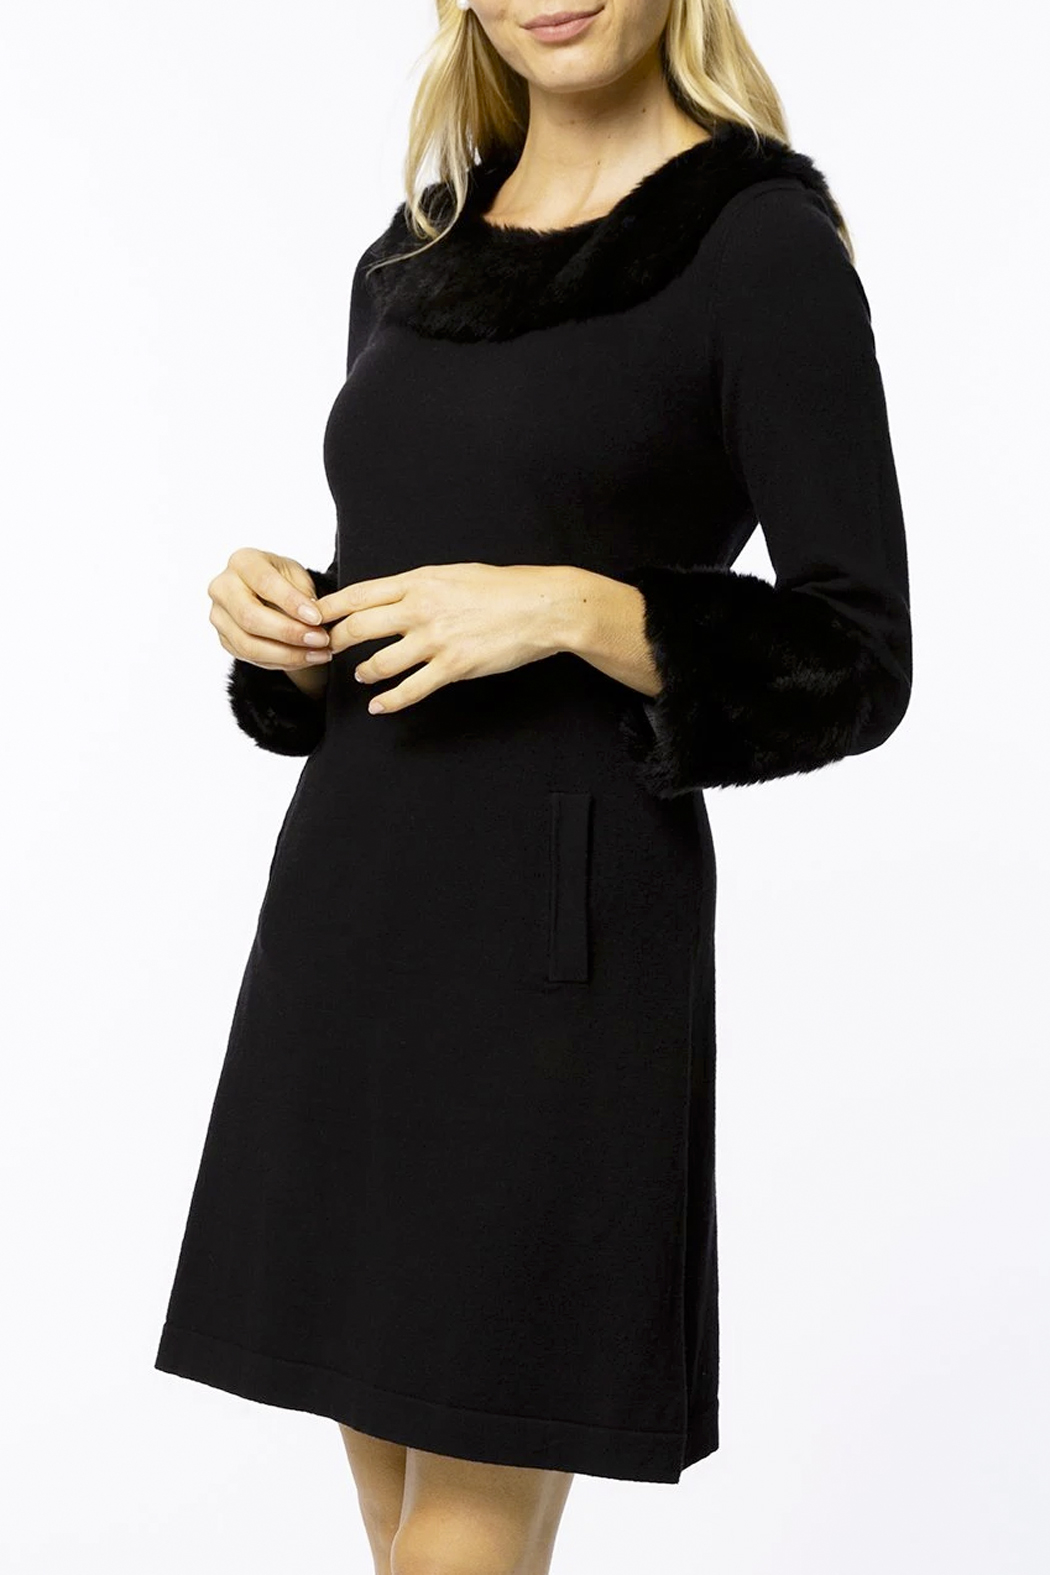 Tyler Boe Chelsey Cotton/Cashmere Dress with Faux Fur - Main Image